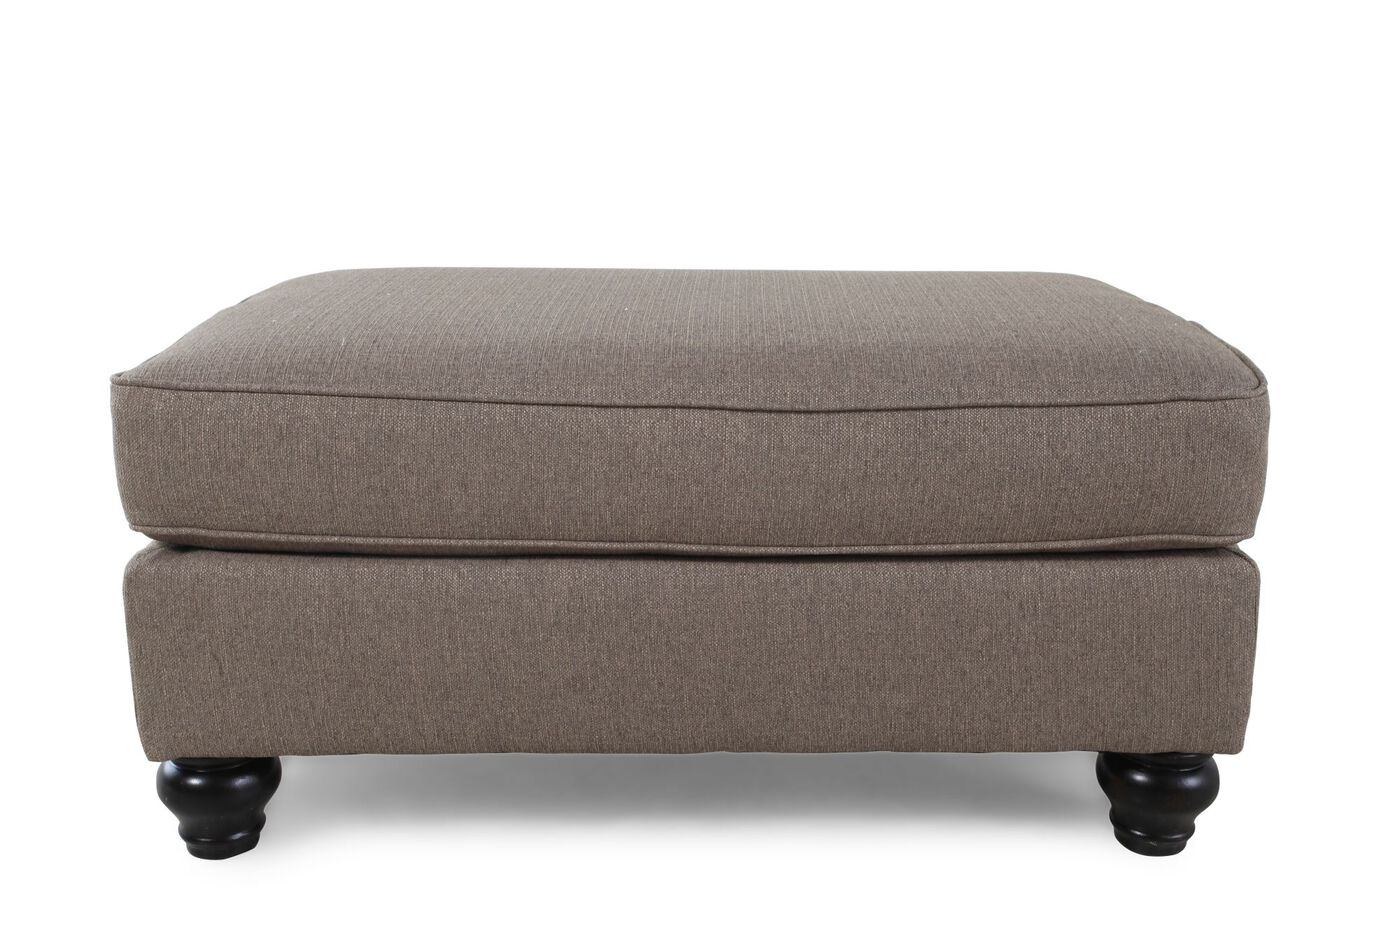 zzz chairs ottomans by adcock collection and collections upholstered thomasville chair sof